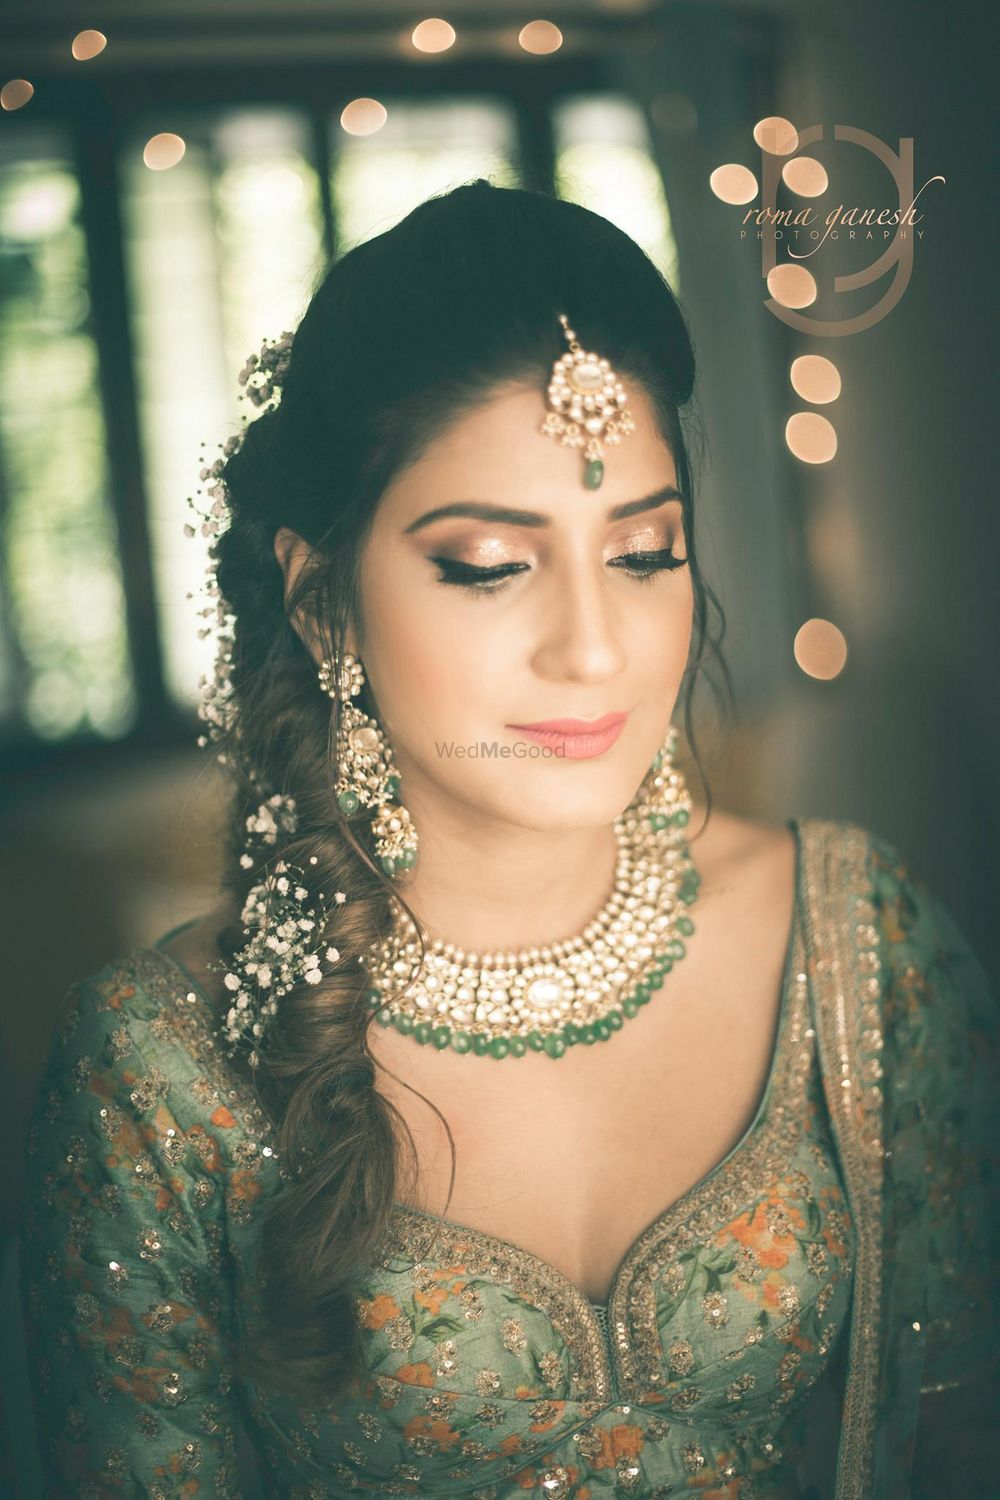 Photo of Pretty mehendi look with soft gold makeup